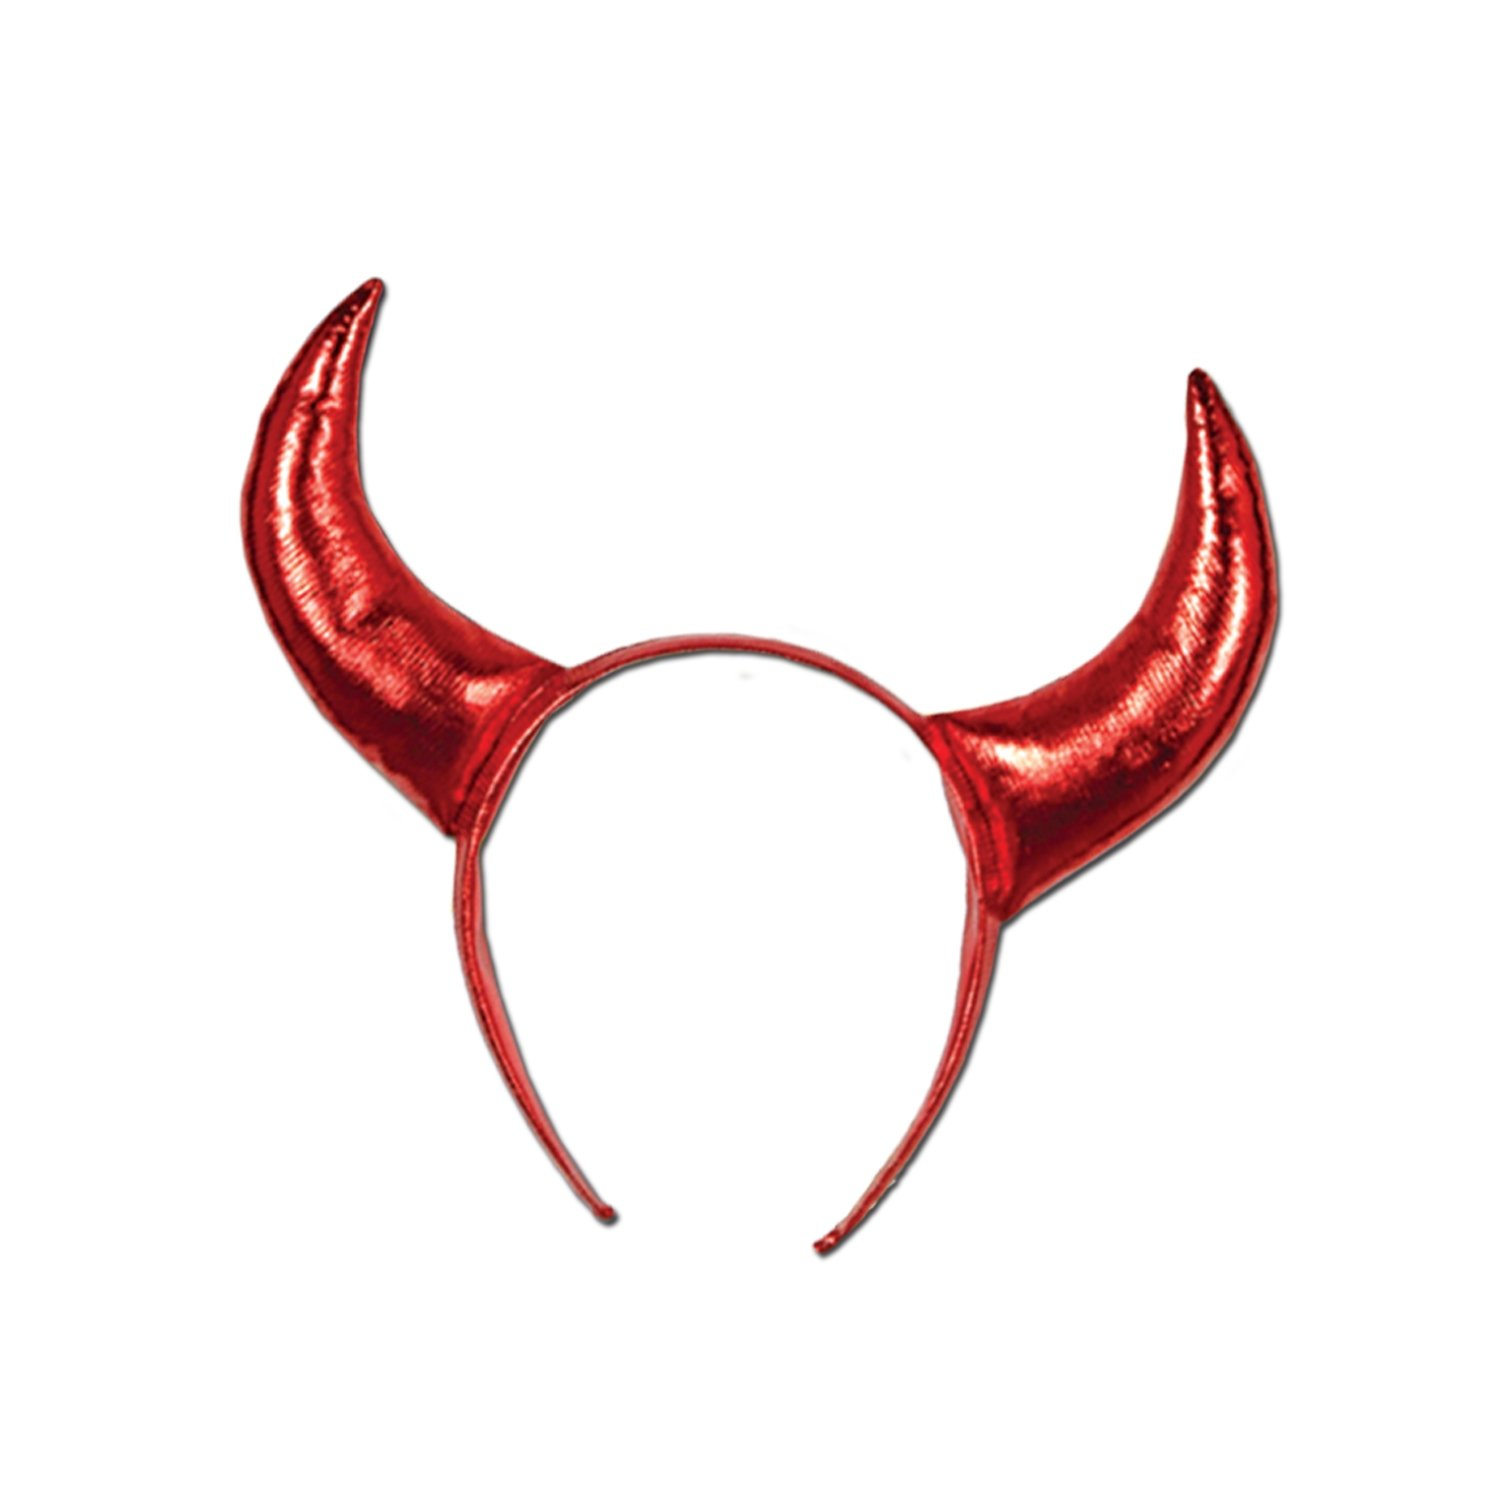 amazoncom beistle devil horns costume headwear and hats kitchen dining - Devil Horns For Halloween